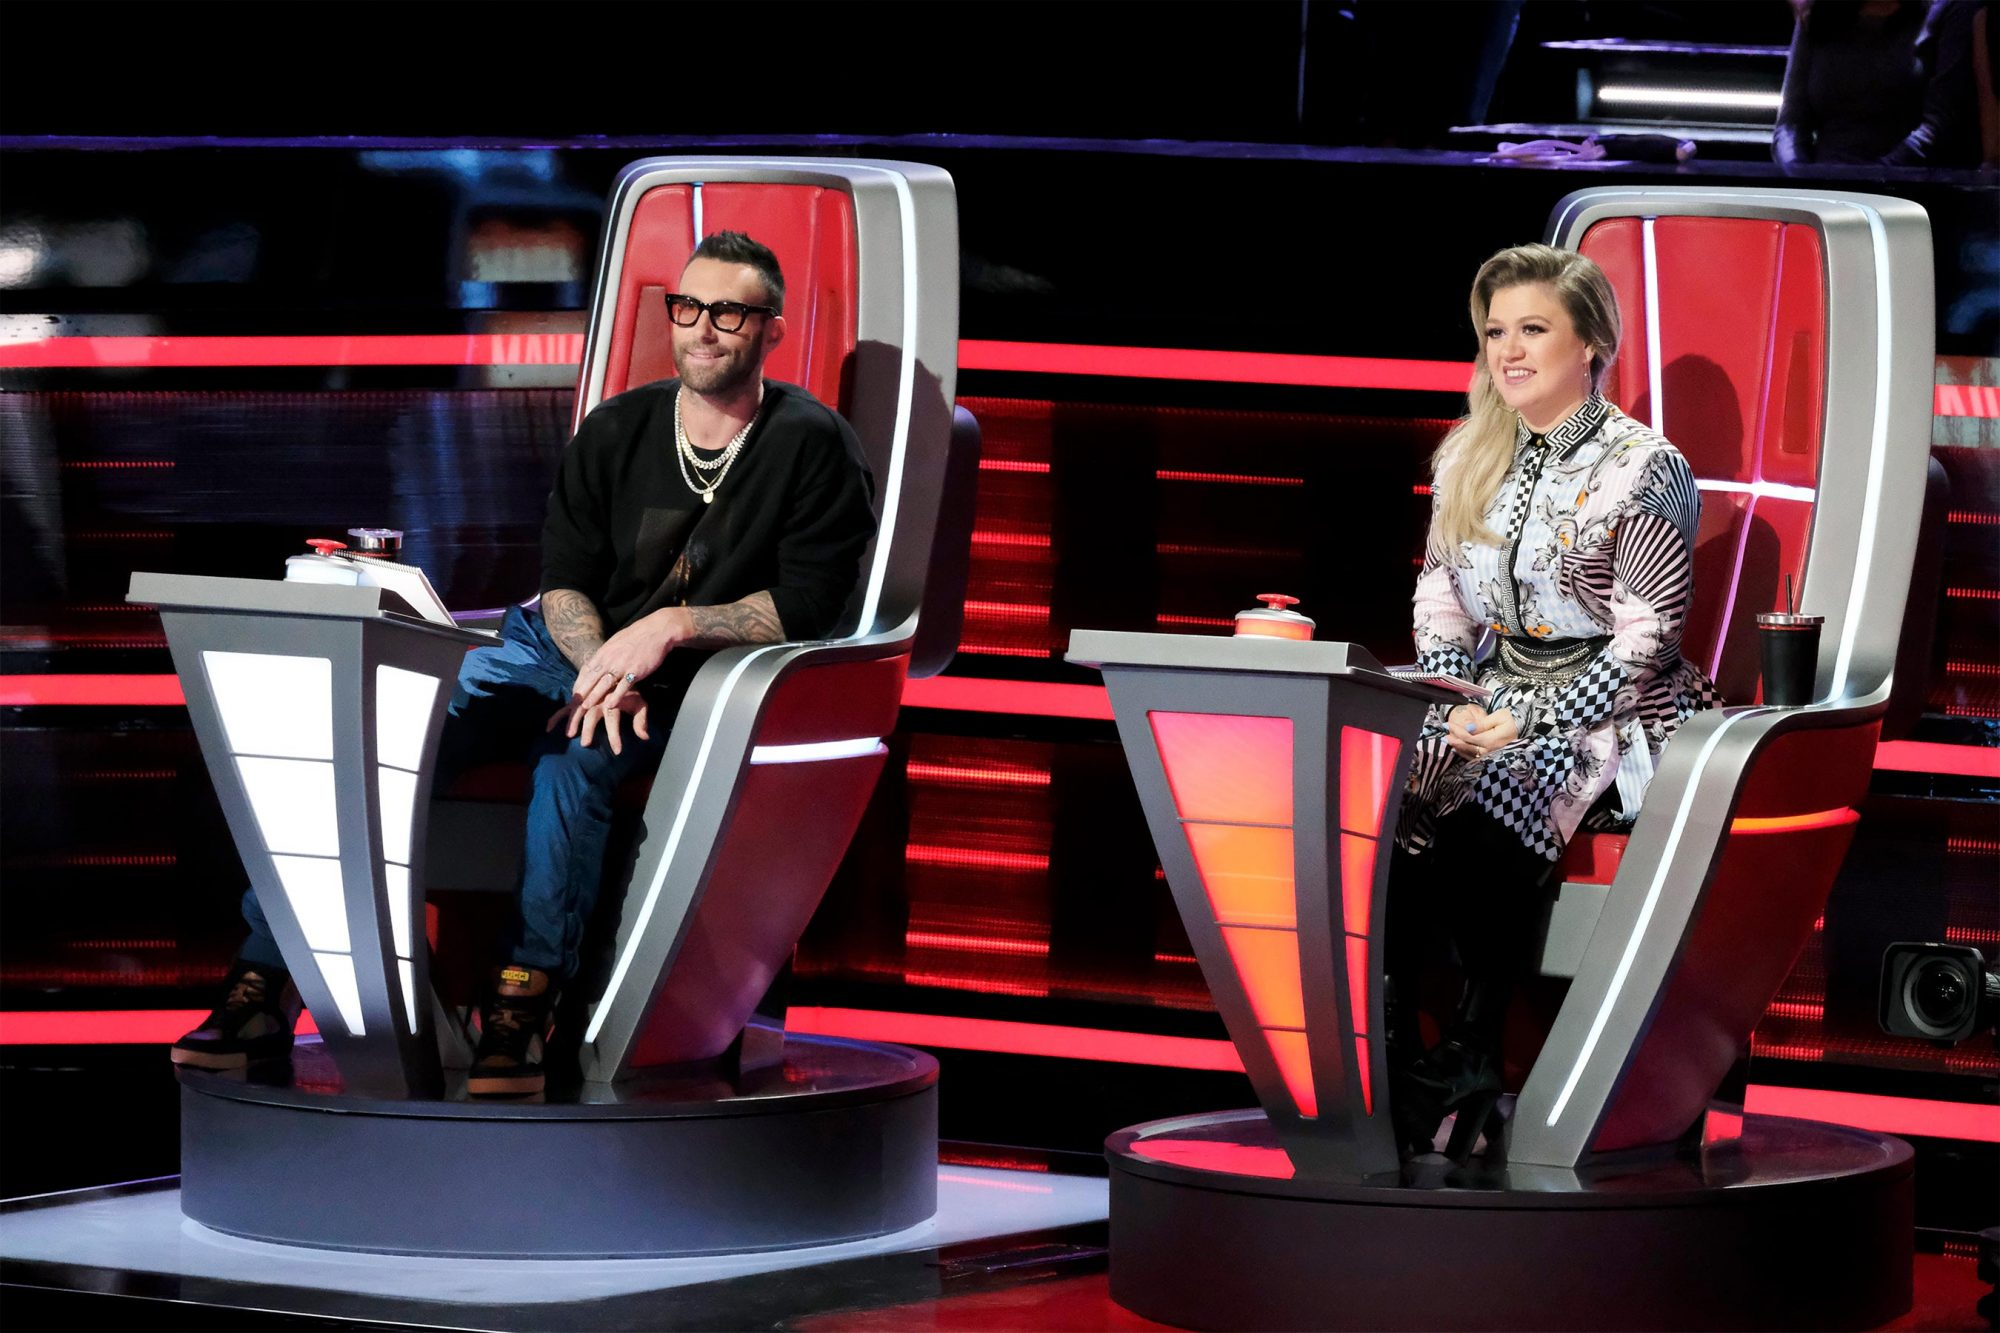 THE VOICE -- ?Knockout Rounds? Episode 1512 -- Pictured: (l-r) Adam Levine, Kelly Clarkson -- (Photo by: Trae Patton/NBC/NBCU Photo Bank via Getty Images)